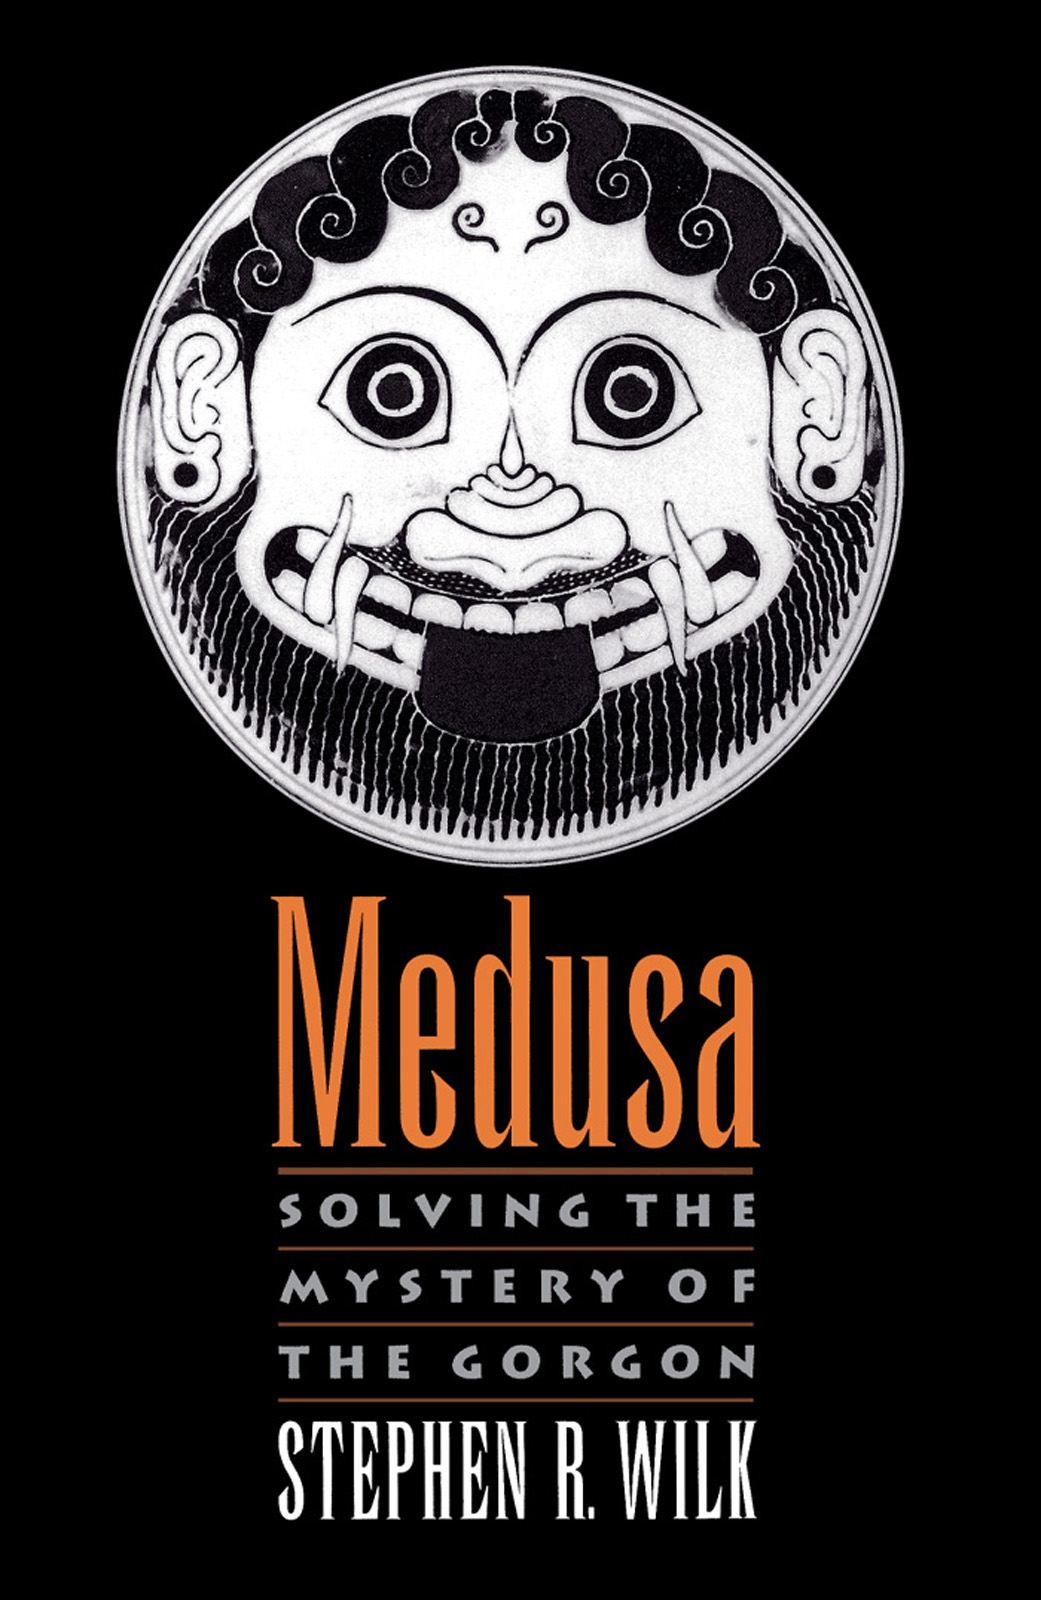 Medusa : Solving the Mystery of the Gorgon